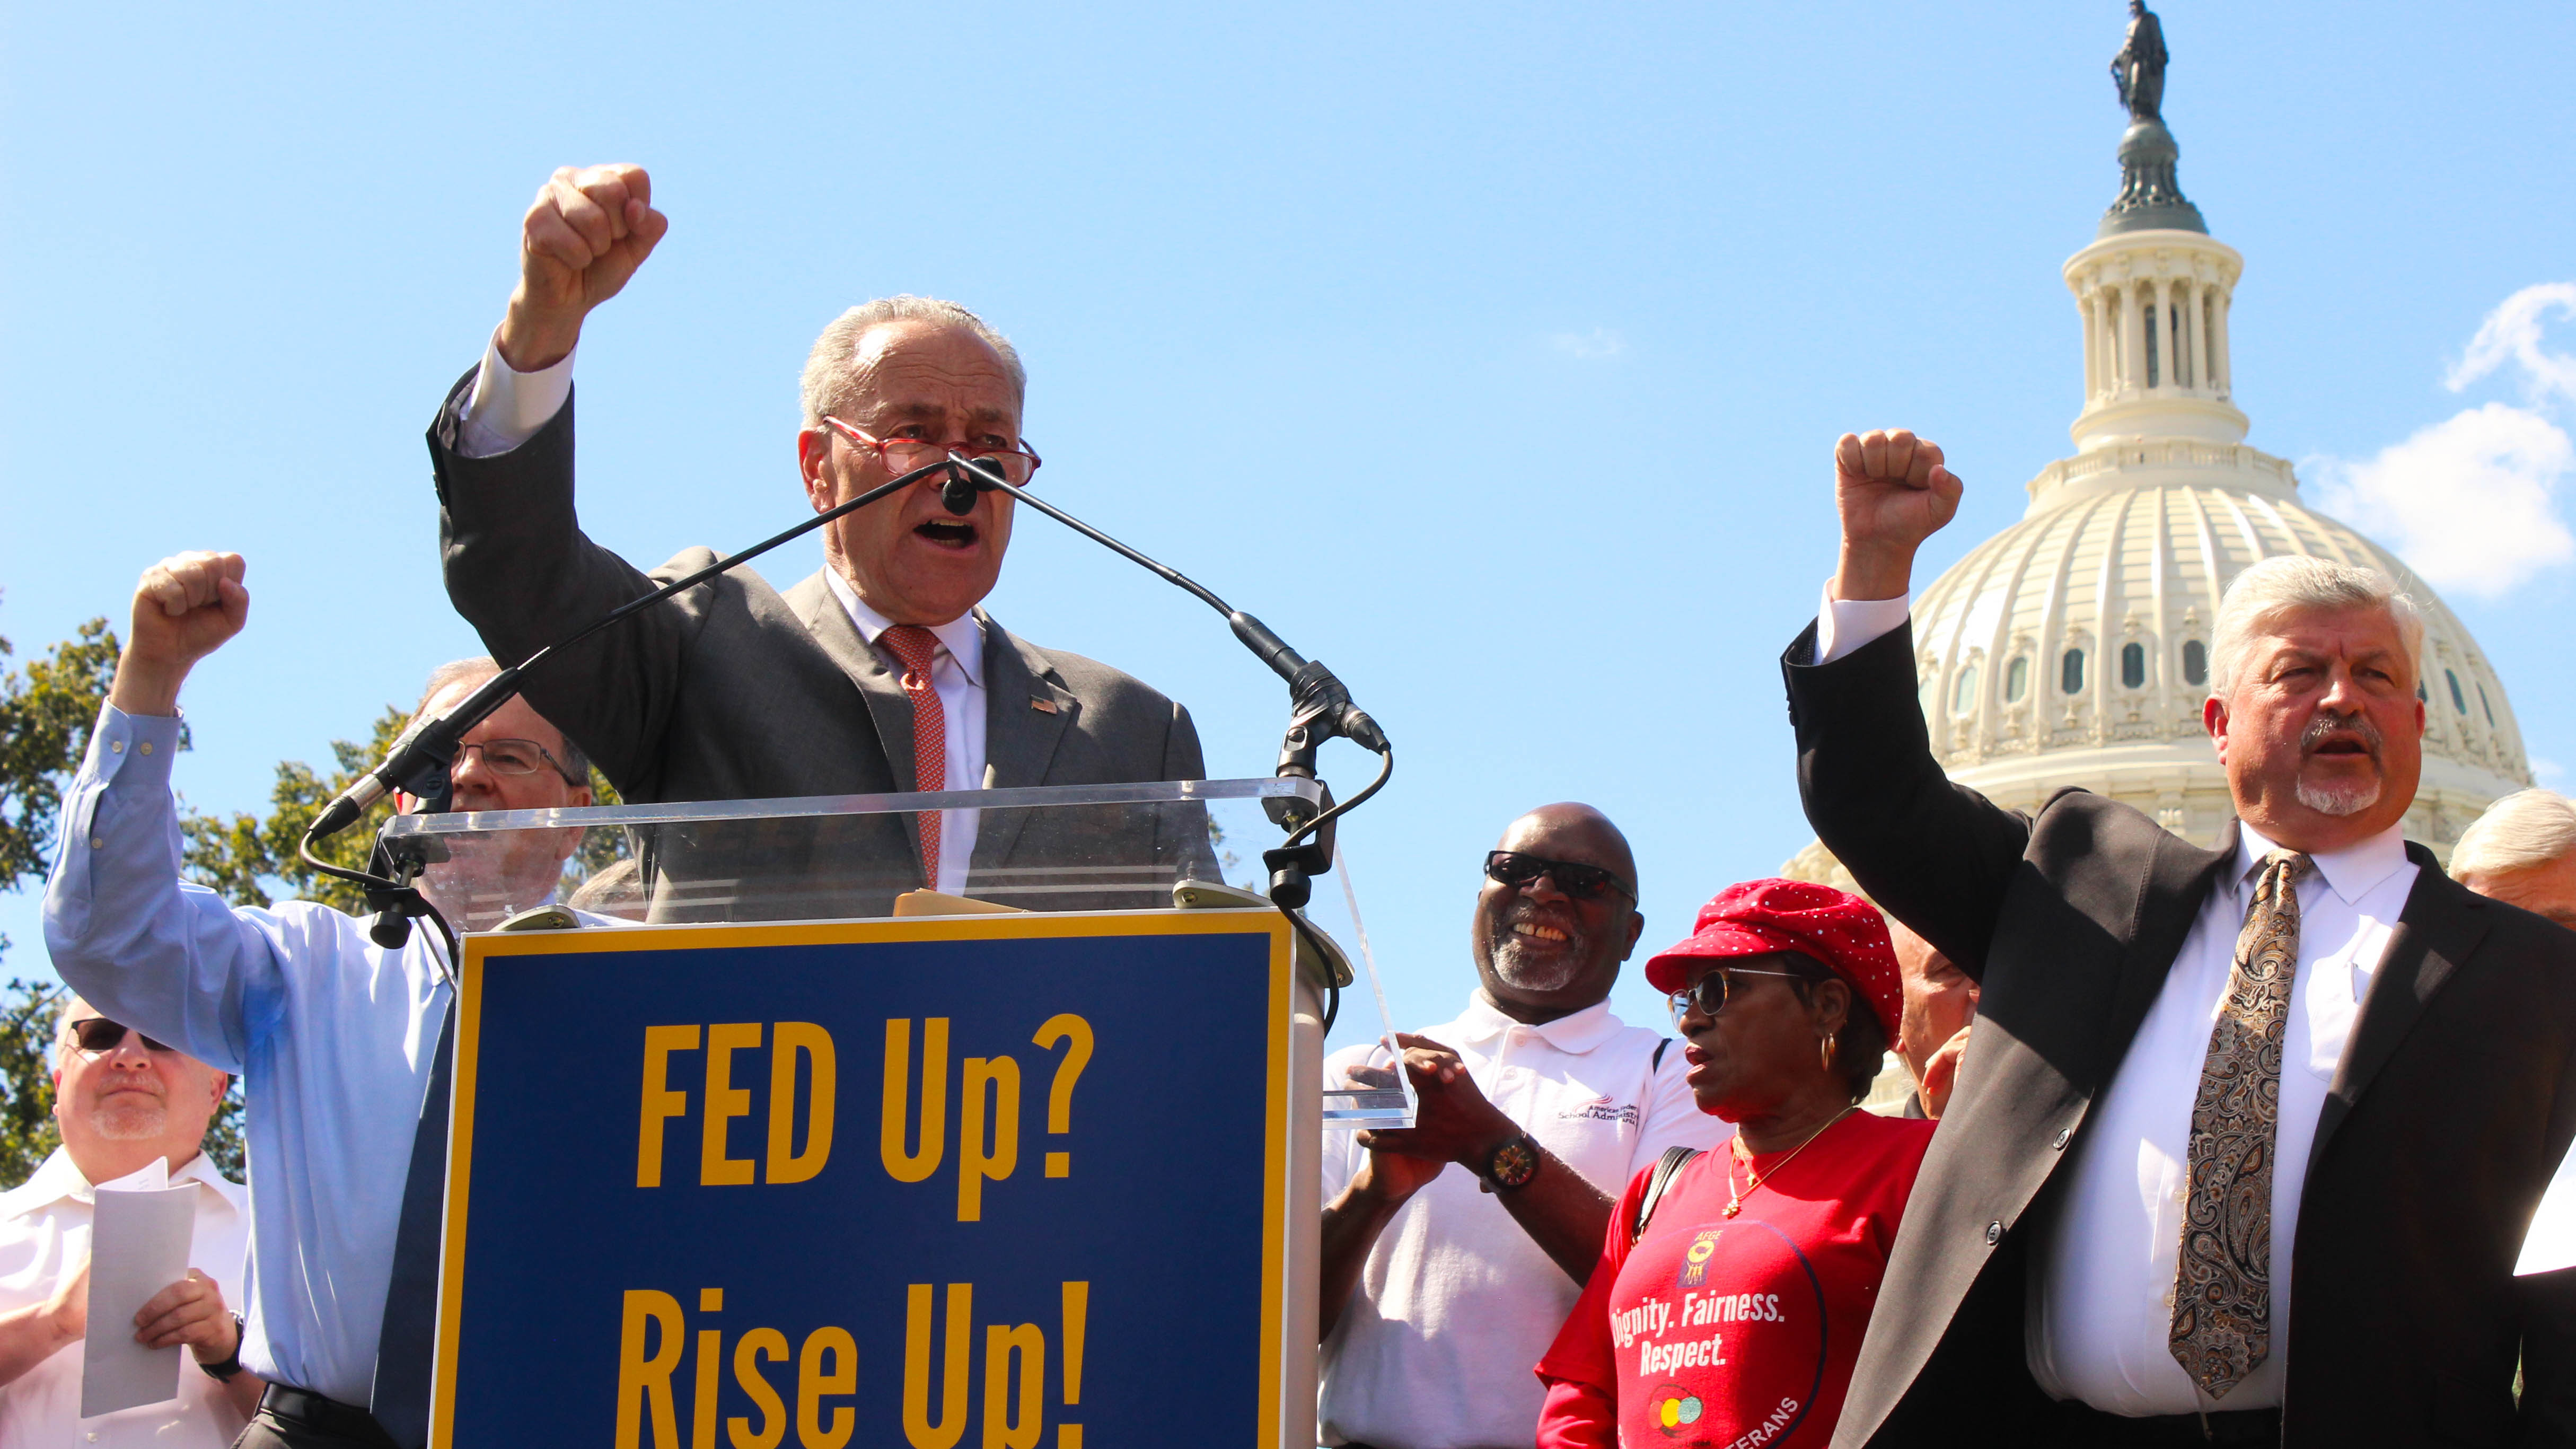 Sen. Chuck Schumer, D-N.Y., speaks to union protesters outside the U.S. Capitol building. (Jessie Bur/Staff)